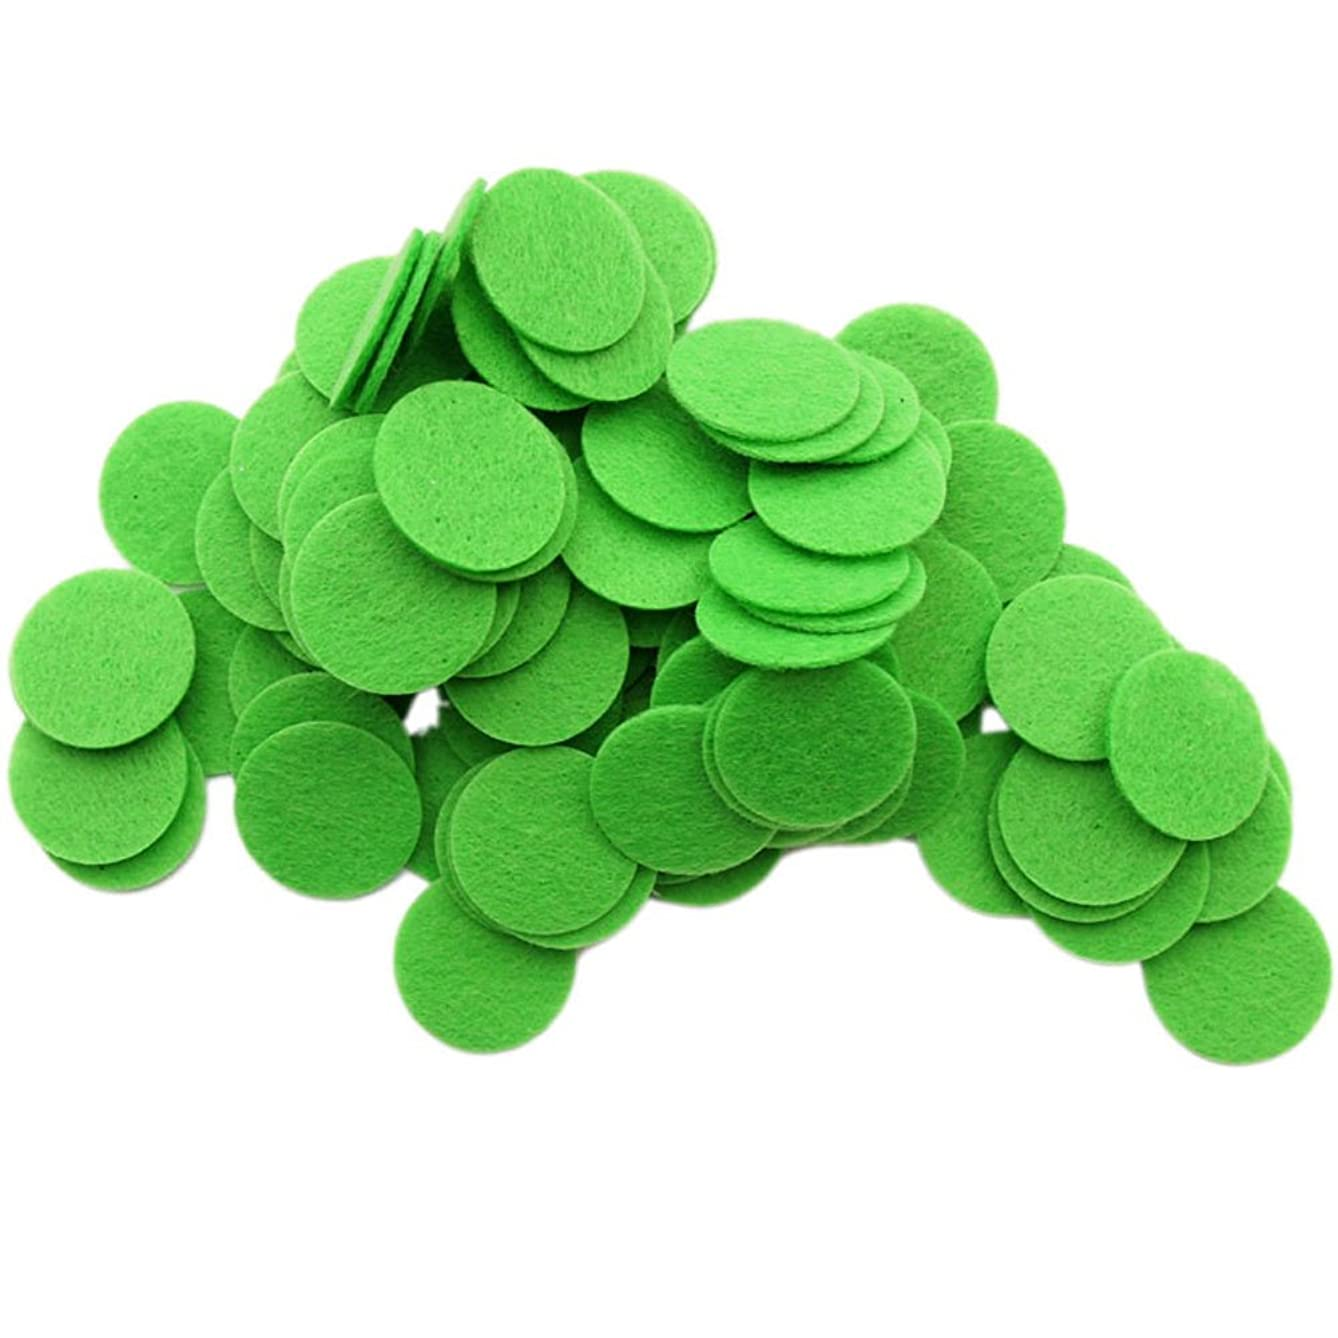 Playfully Ever After 1 Inch Green 100pc Stiff Felt Circles